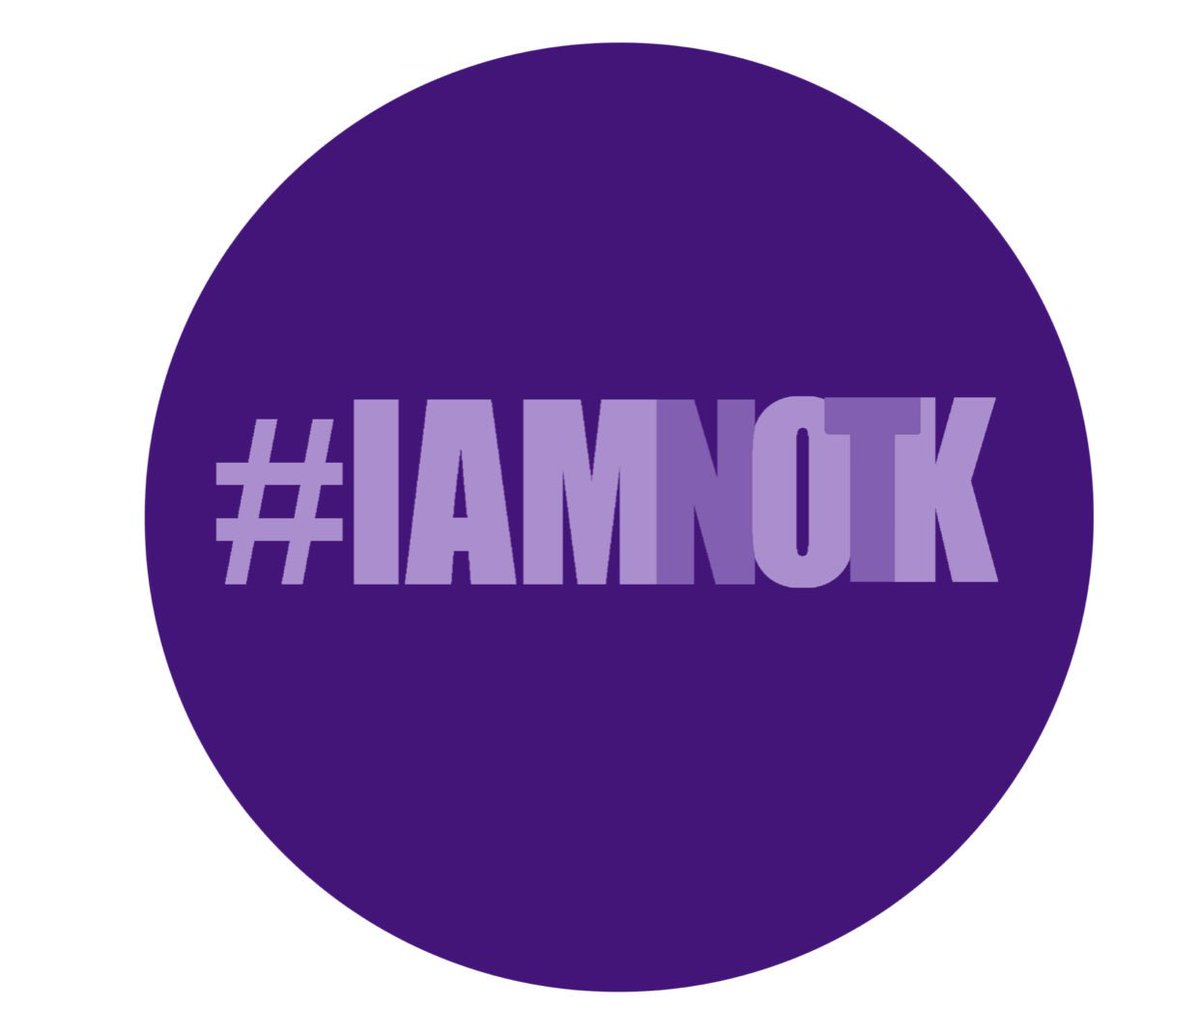 RT @FitzReb: #IAmNotOk with this ???????? https://t.co/BD95YHy7Iu